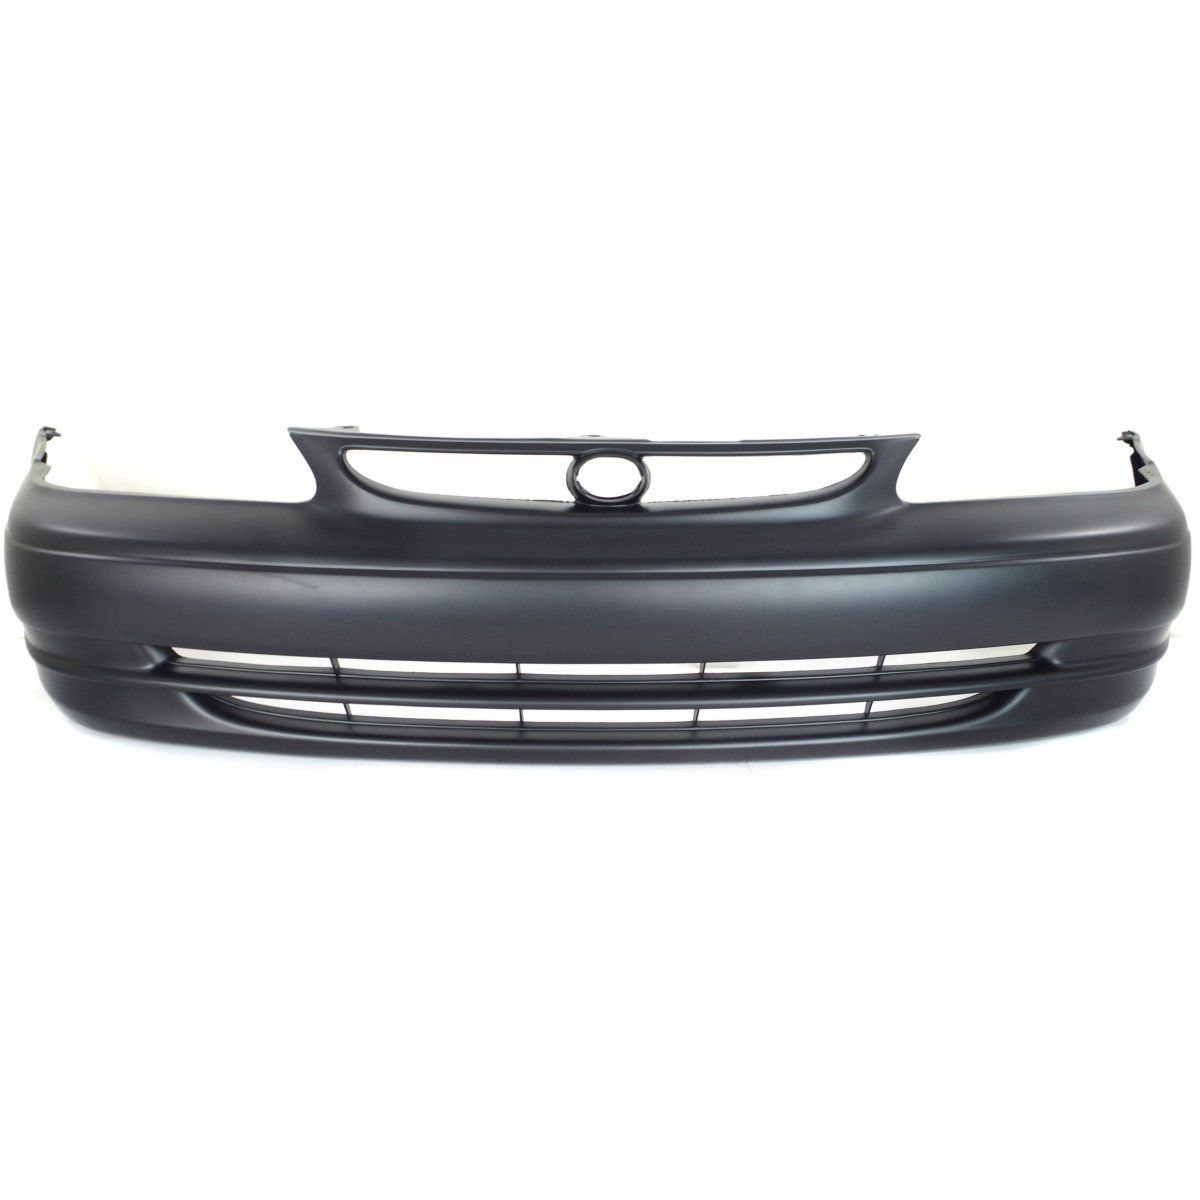 1998-2000 TOYOTA COROLLA Front Bumper Cover Painted to Match